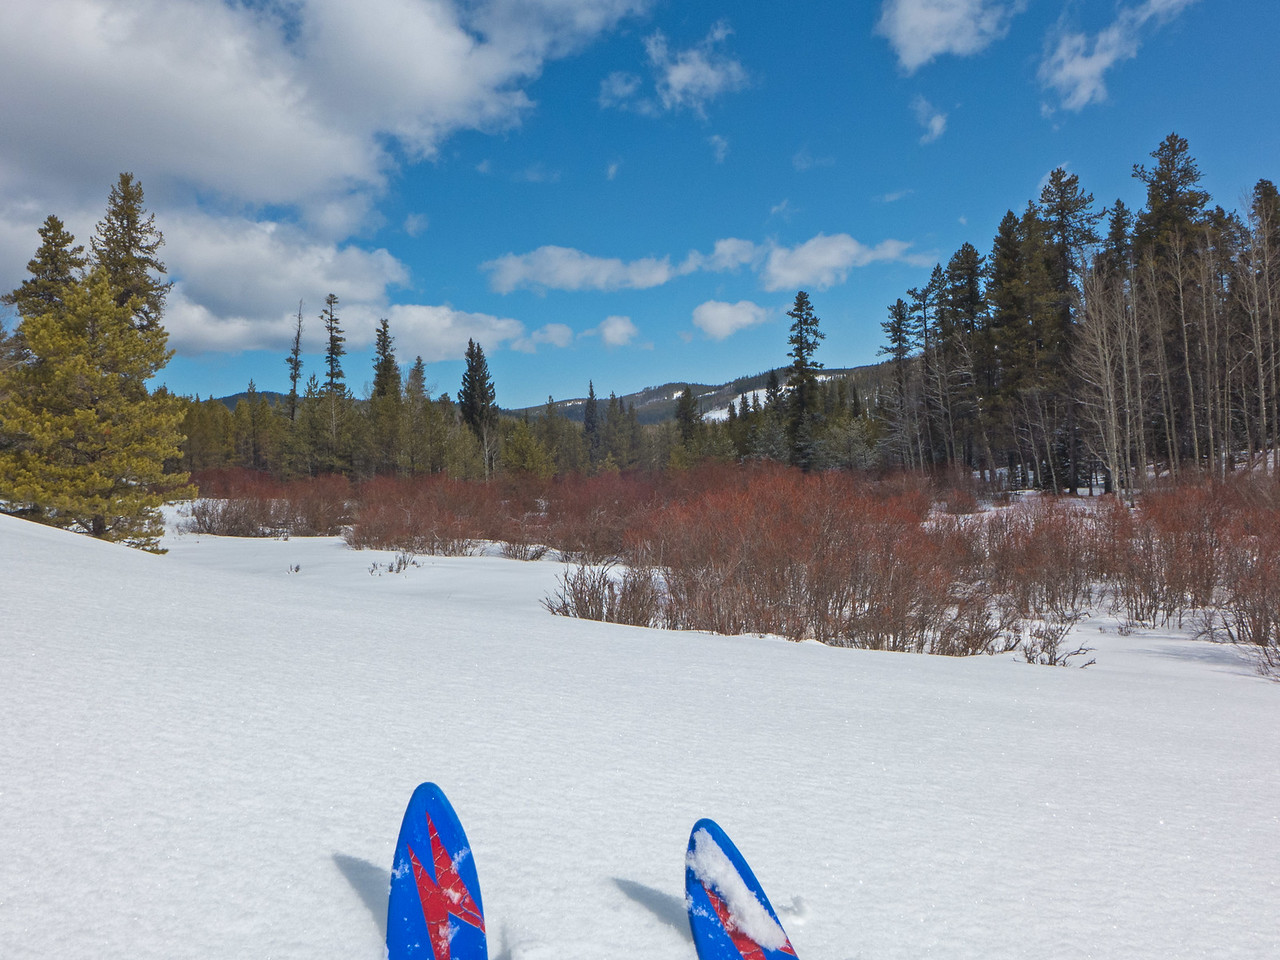 Easy supportive off-trail travel, with no sounds except the hiss of snow against the skis.